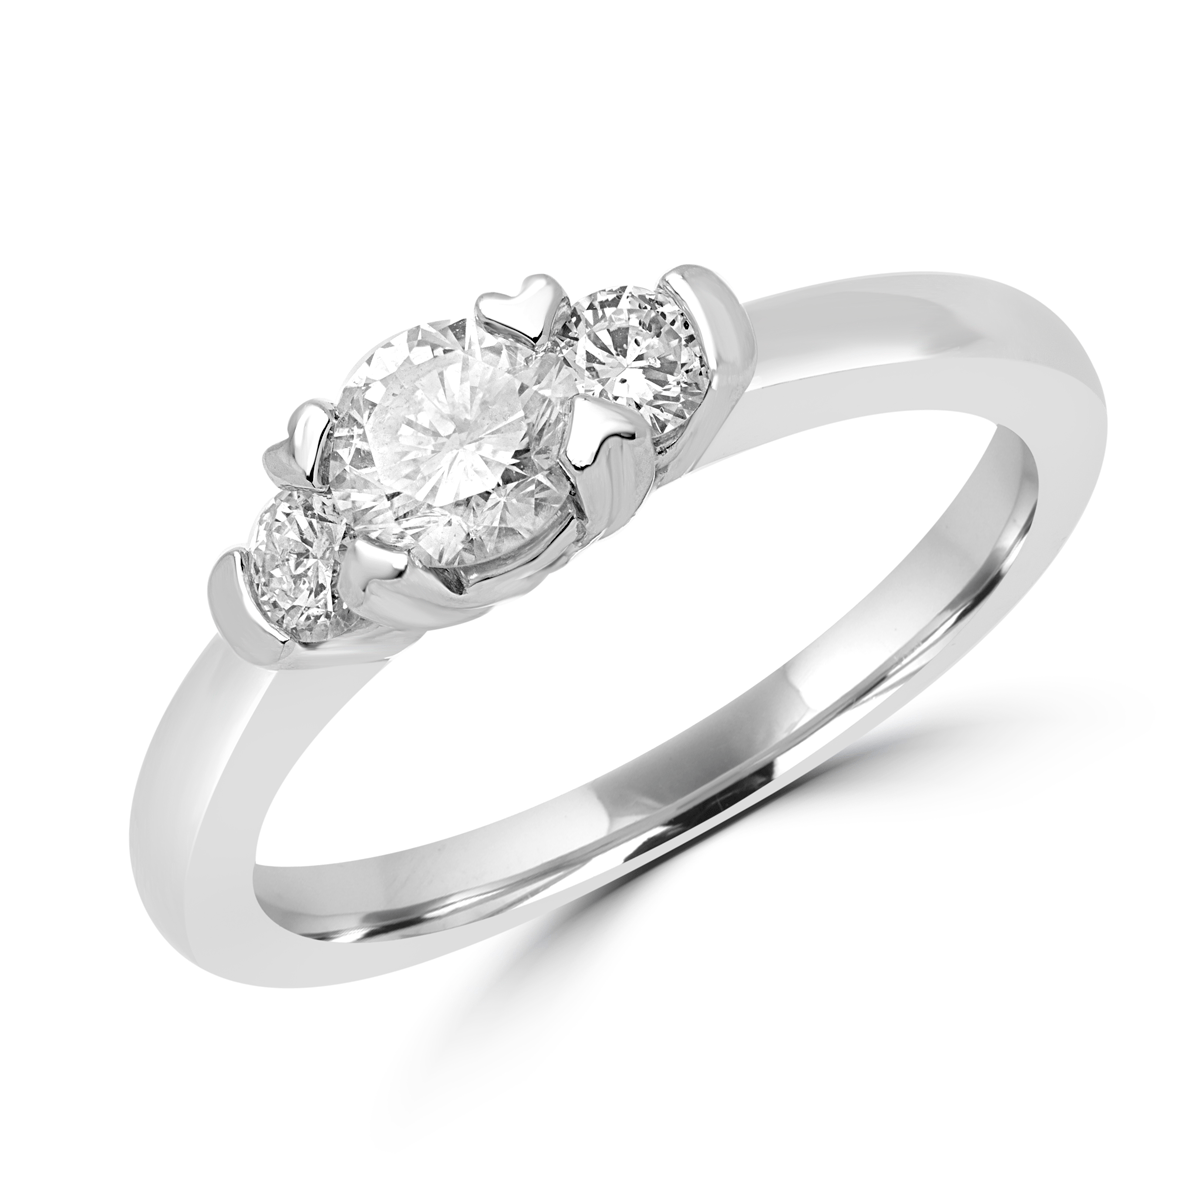 Glittery Engagement Ring 0.68 (ctw) In 14k White Gold